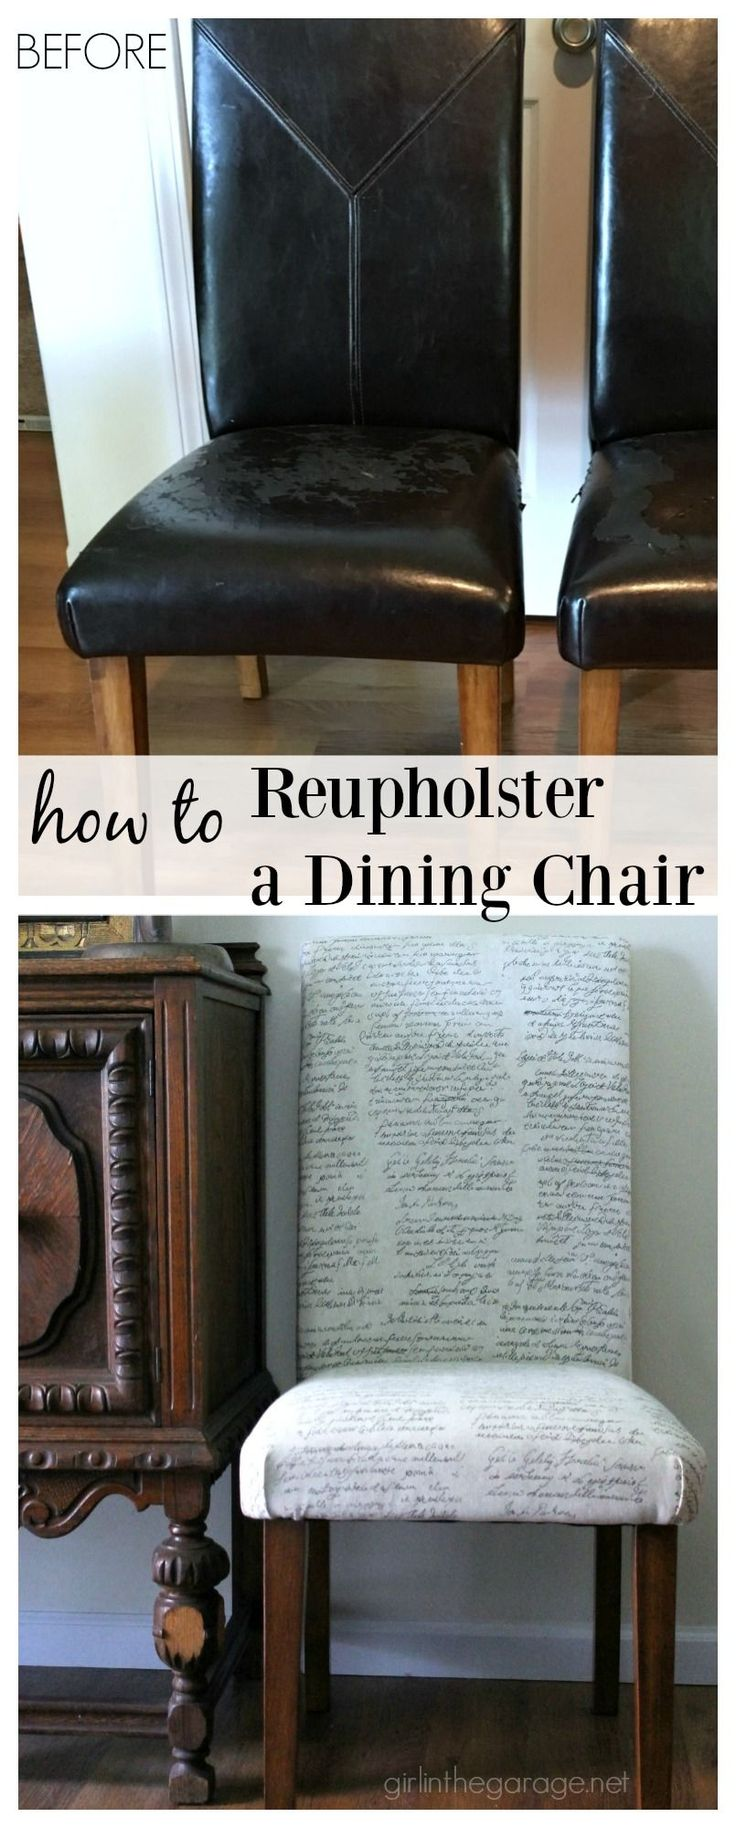 Diy reupholster dining chair - How To Reupholster A Dining Chair Straying From Your Usual Type Of Project